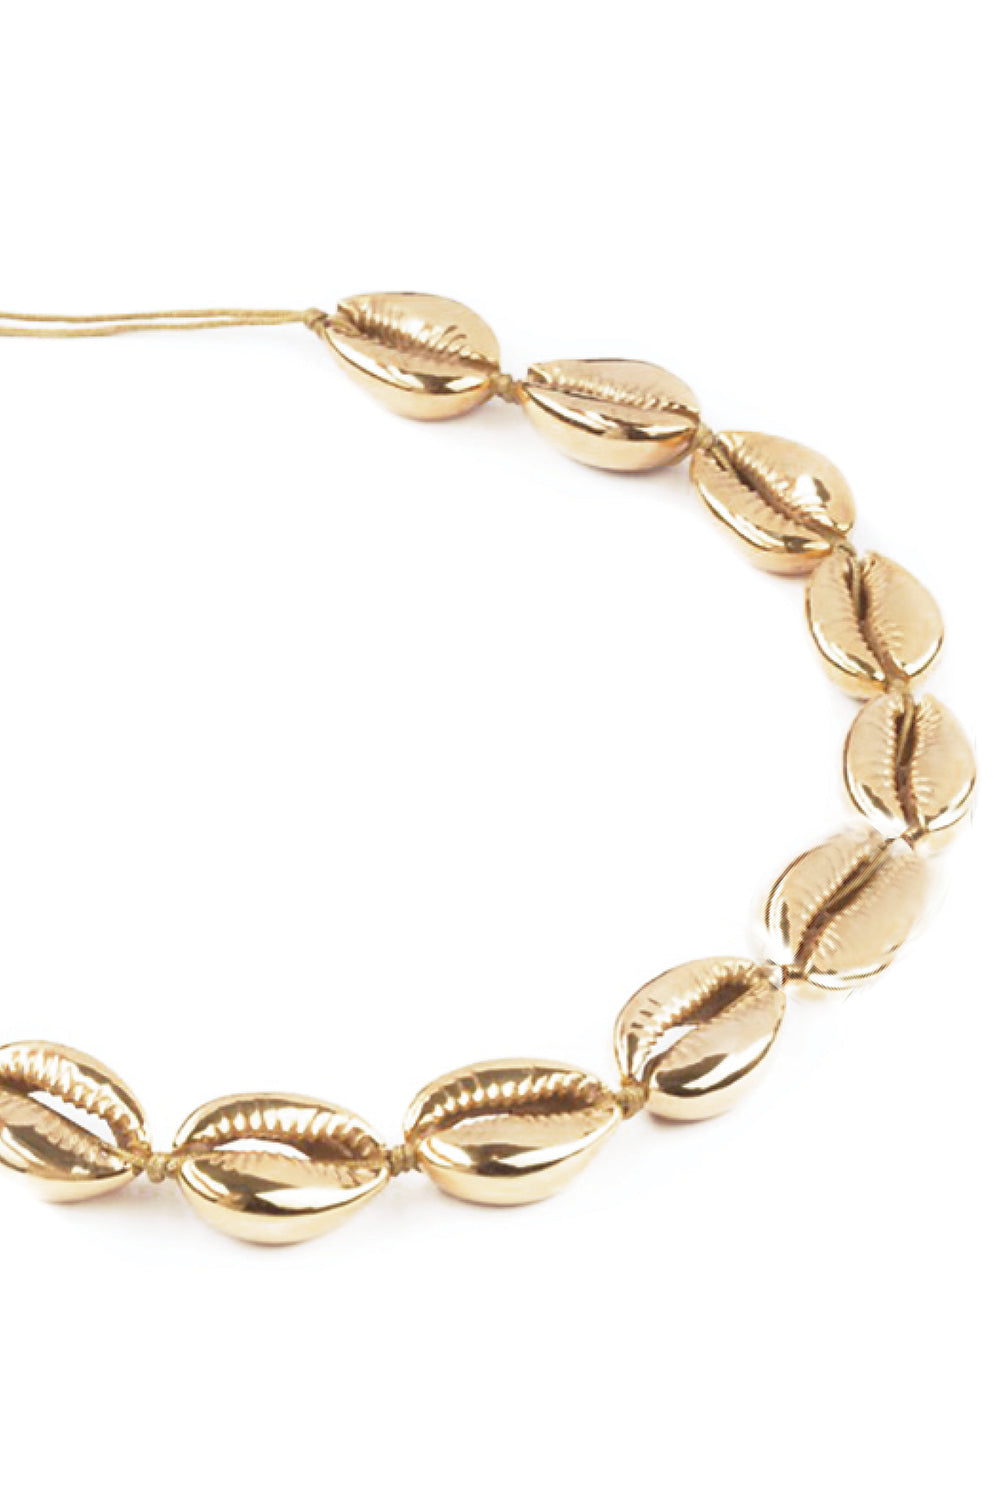 Baltic Choker Necklace in Gold